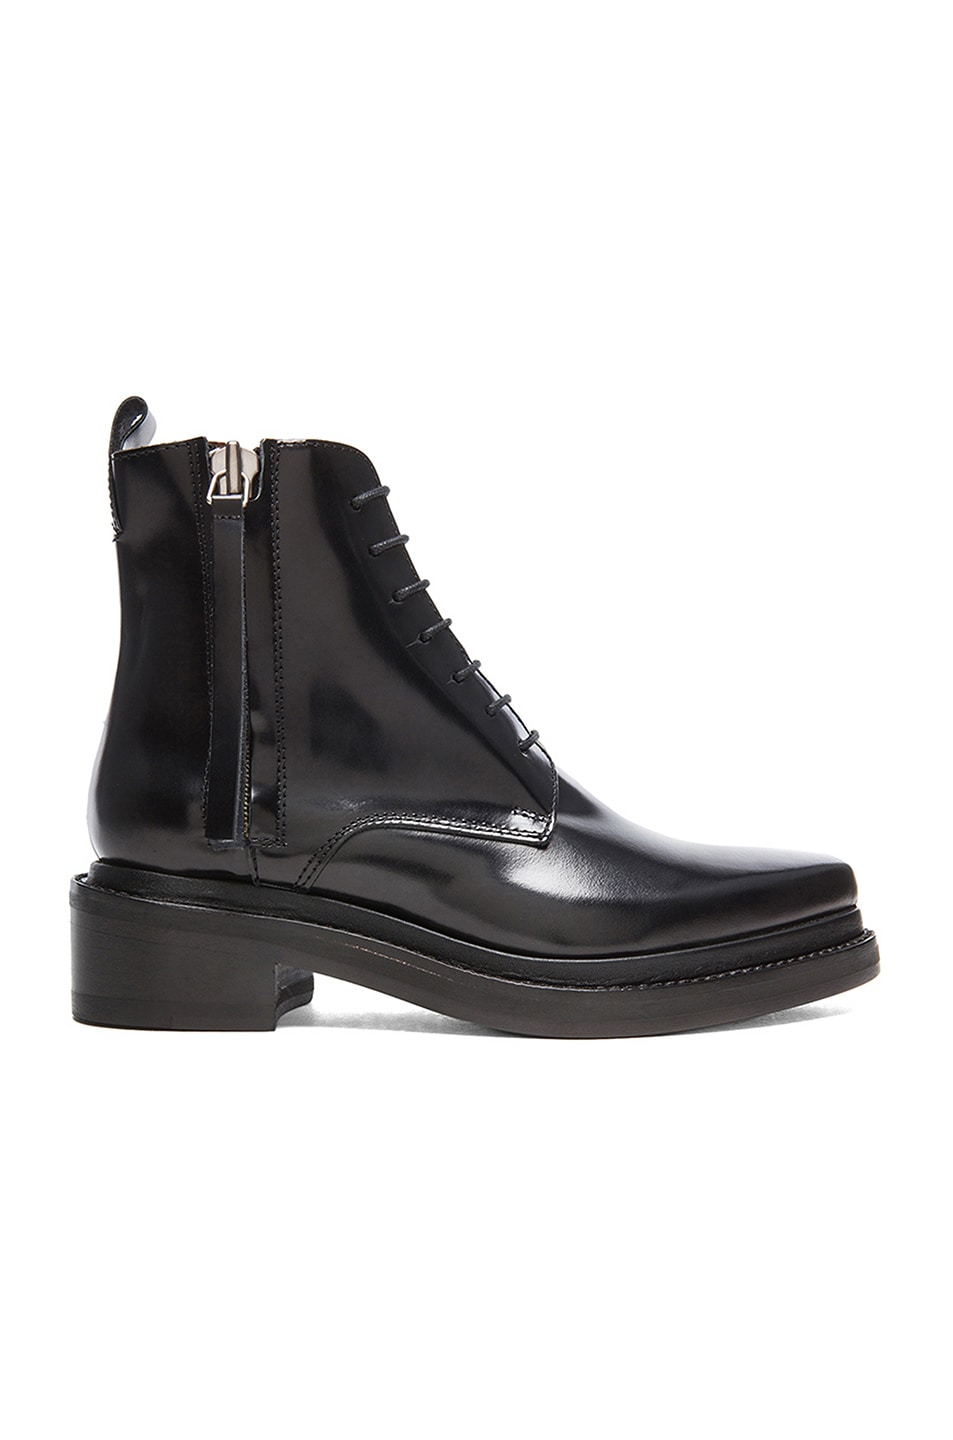 Image 1 of Acne Studios Linden Leather Boots in Black